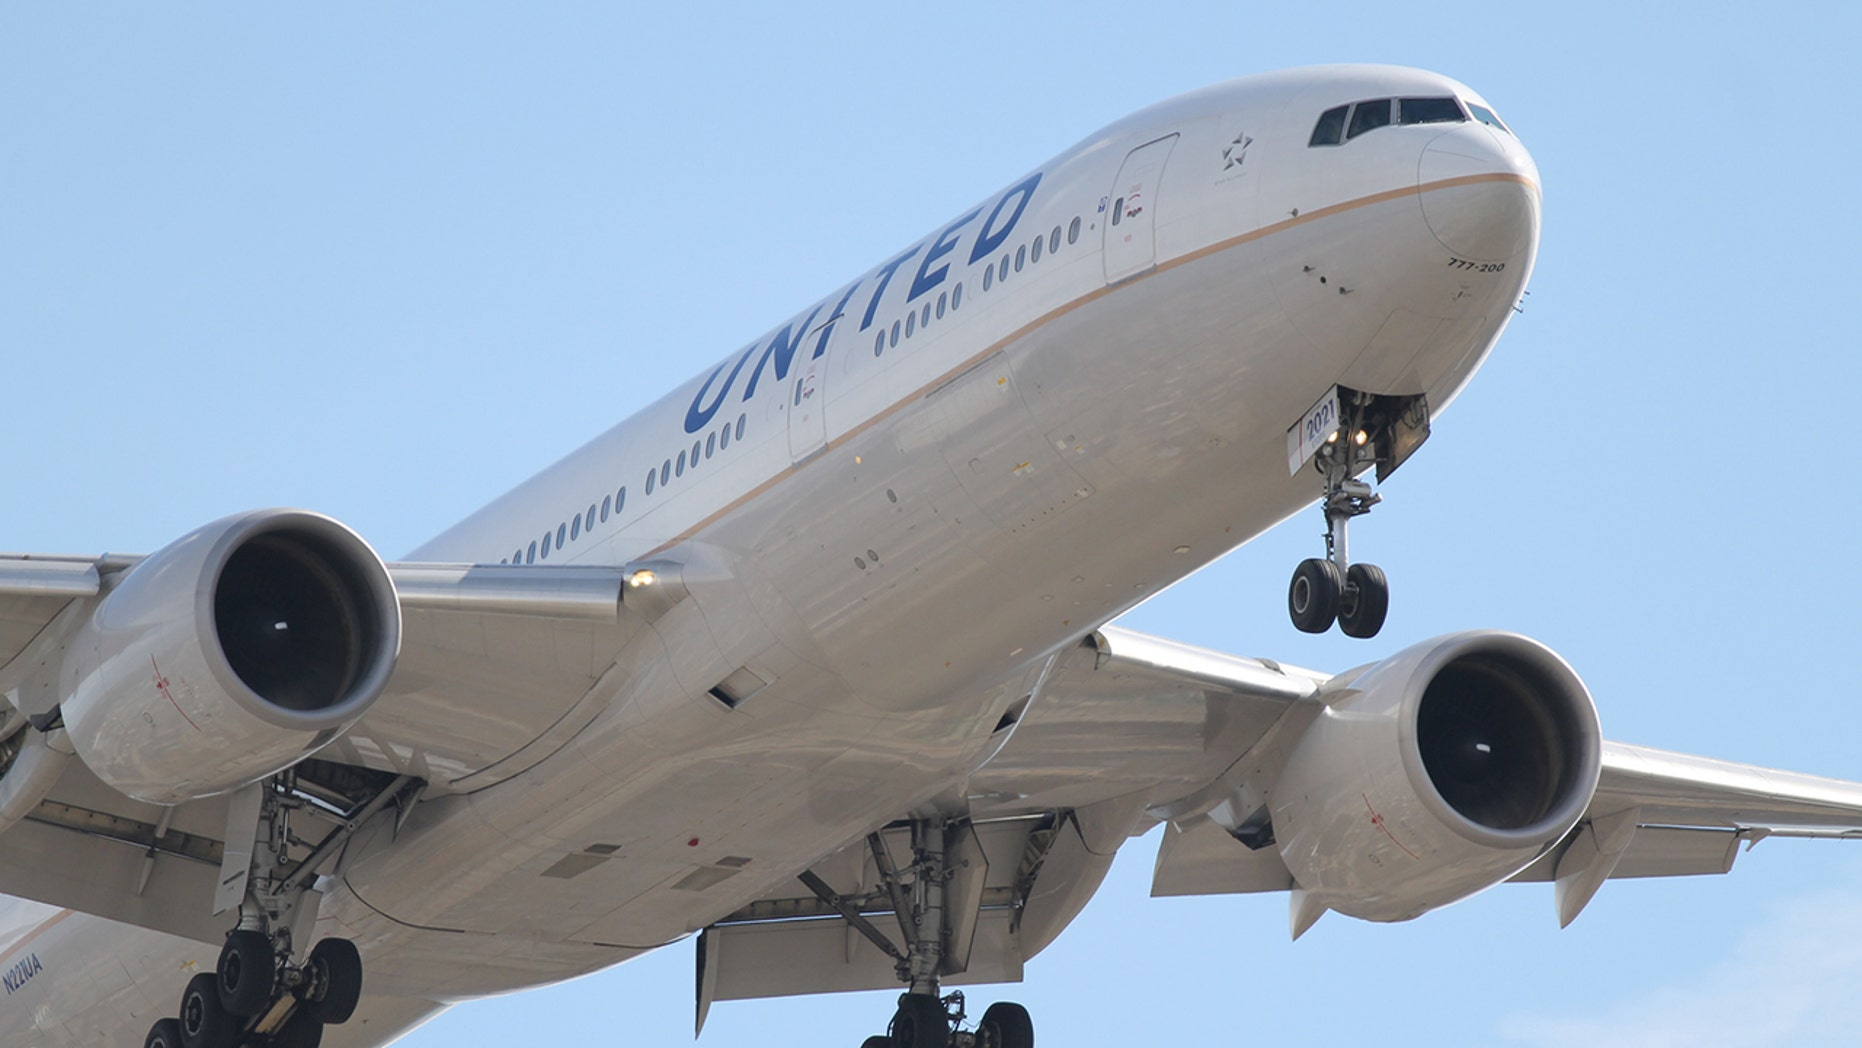 In video of the incident, the female passenger is sitting between two larger passengers and complaining loudly on her phone about the seating arrangement.